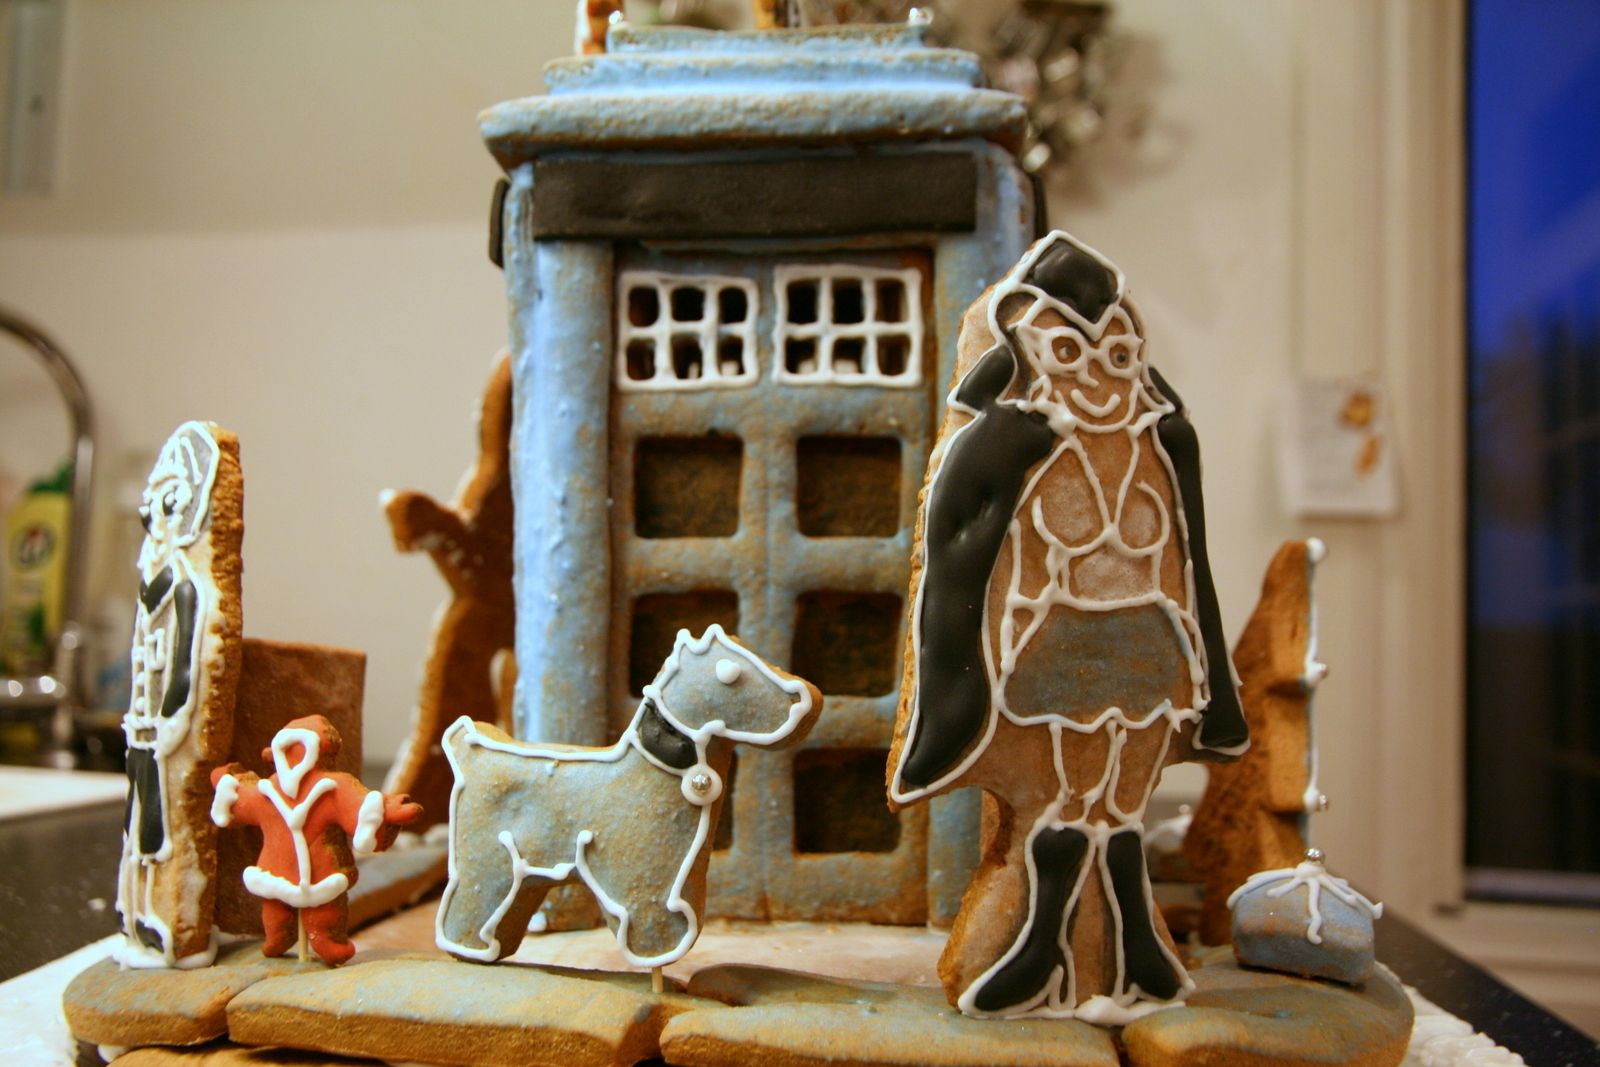 TARDIS https://www.facebook.com/gingerbreadhousecompany